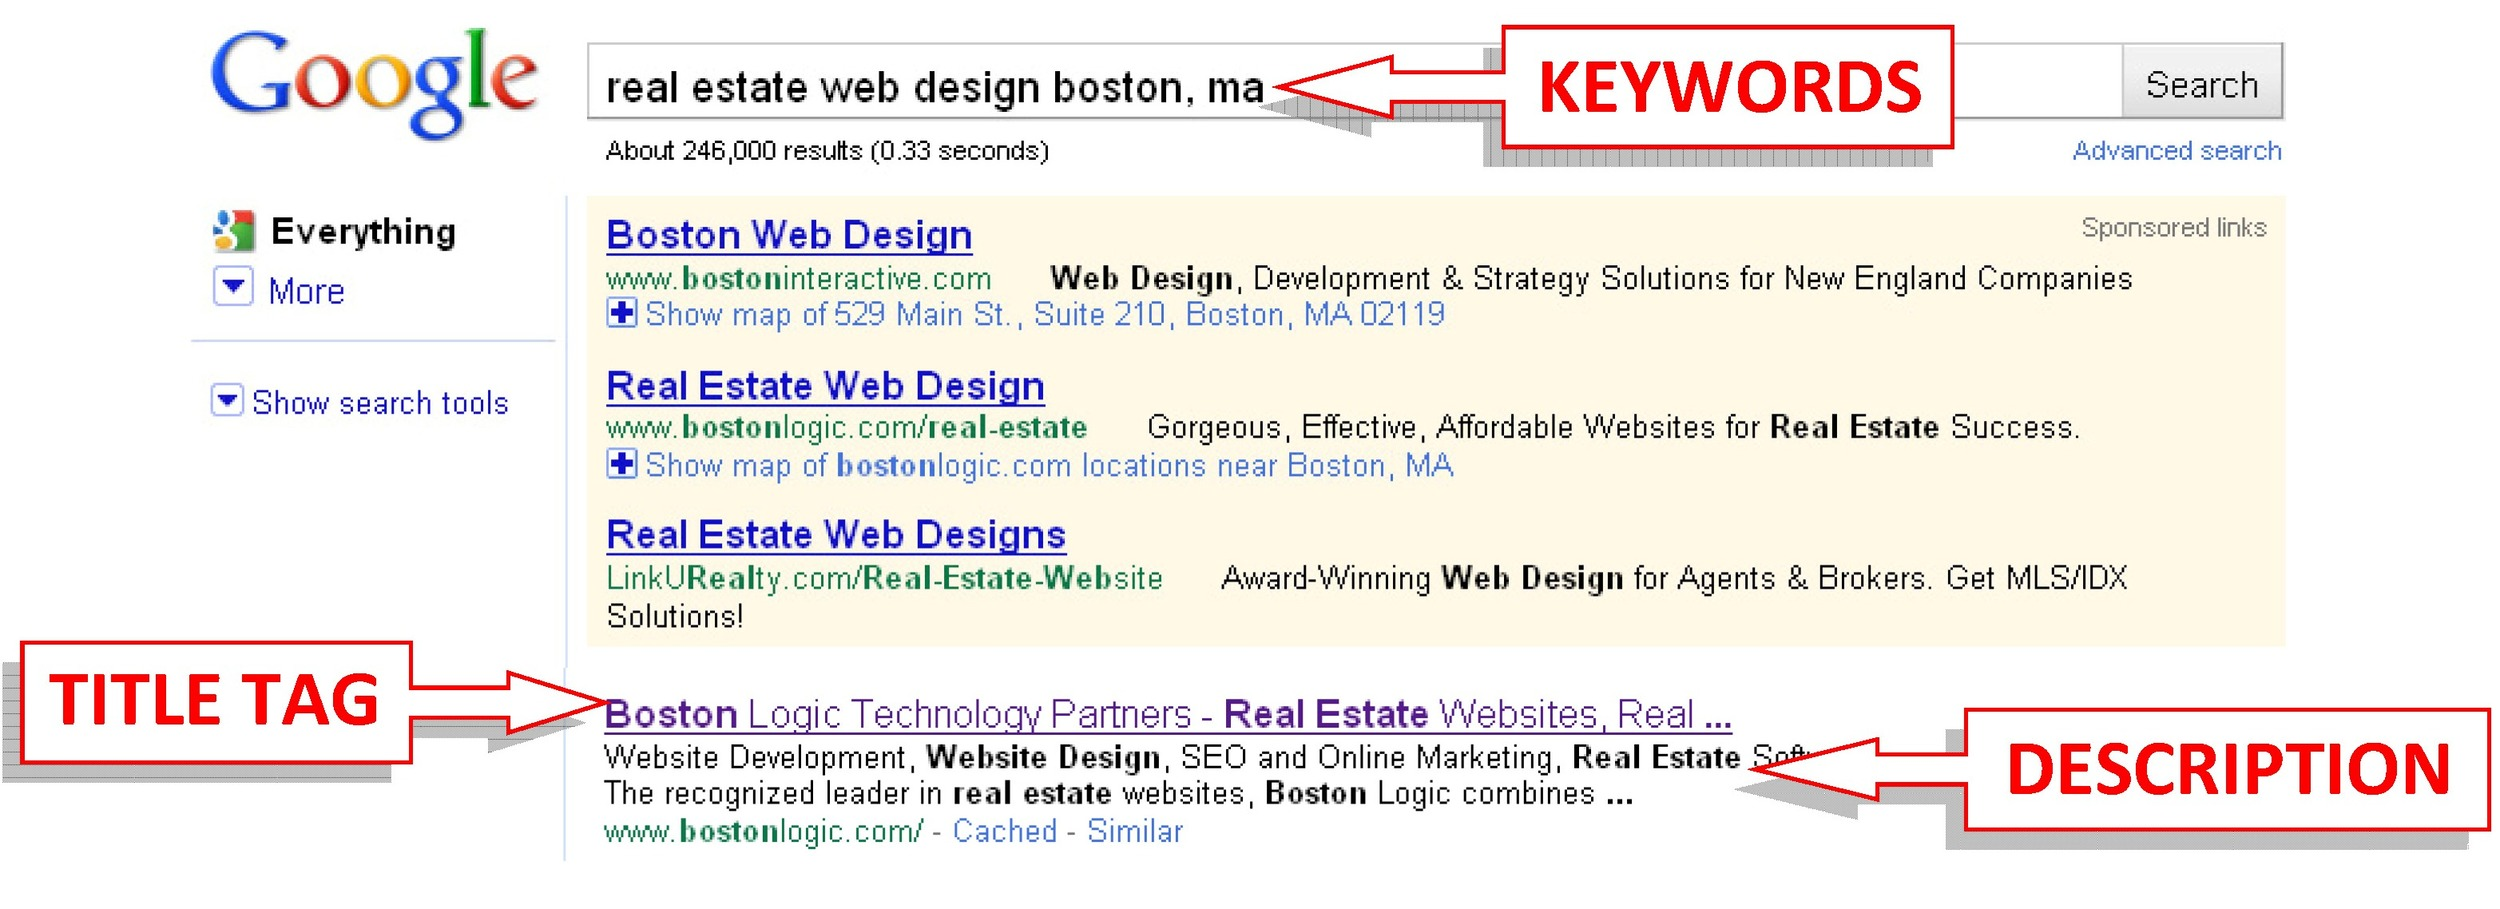 Meta Data in Search Results